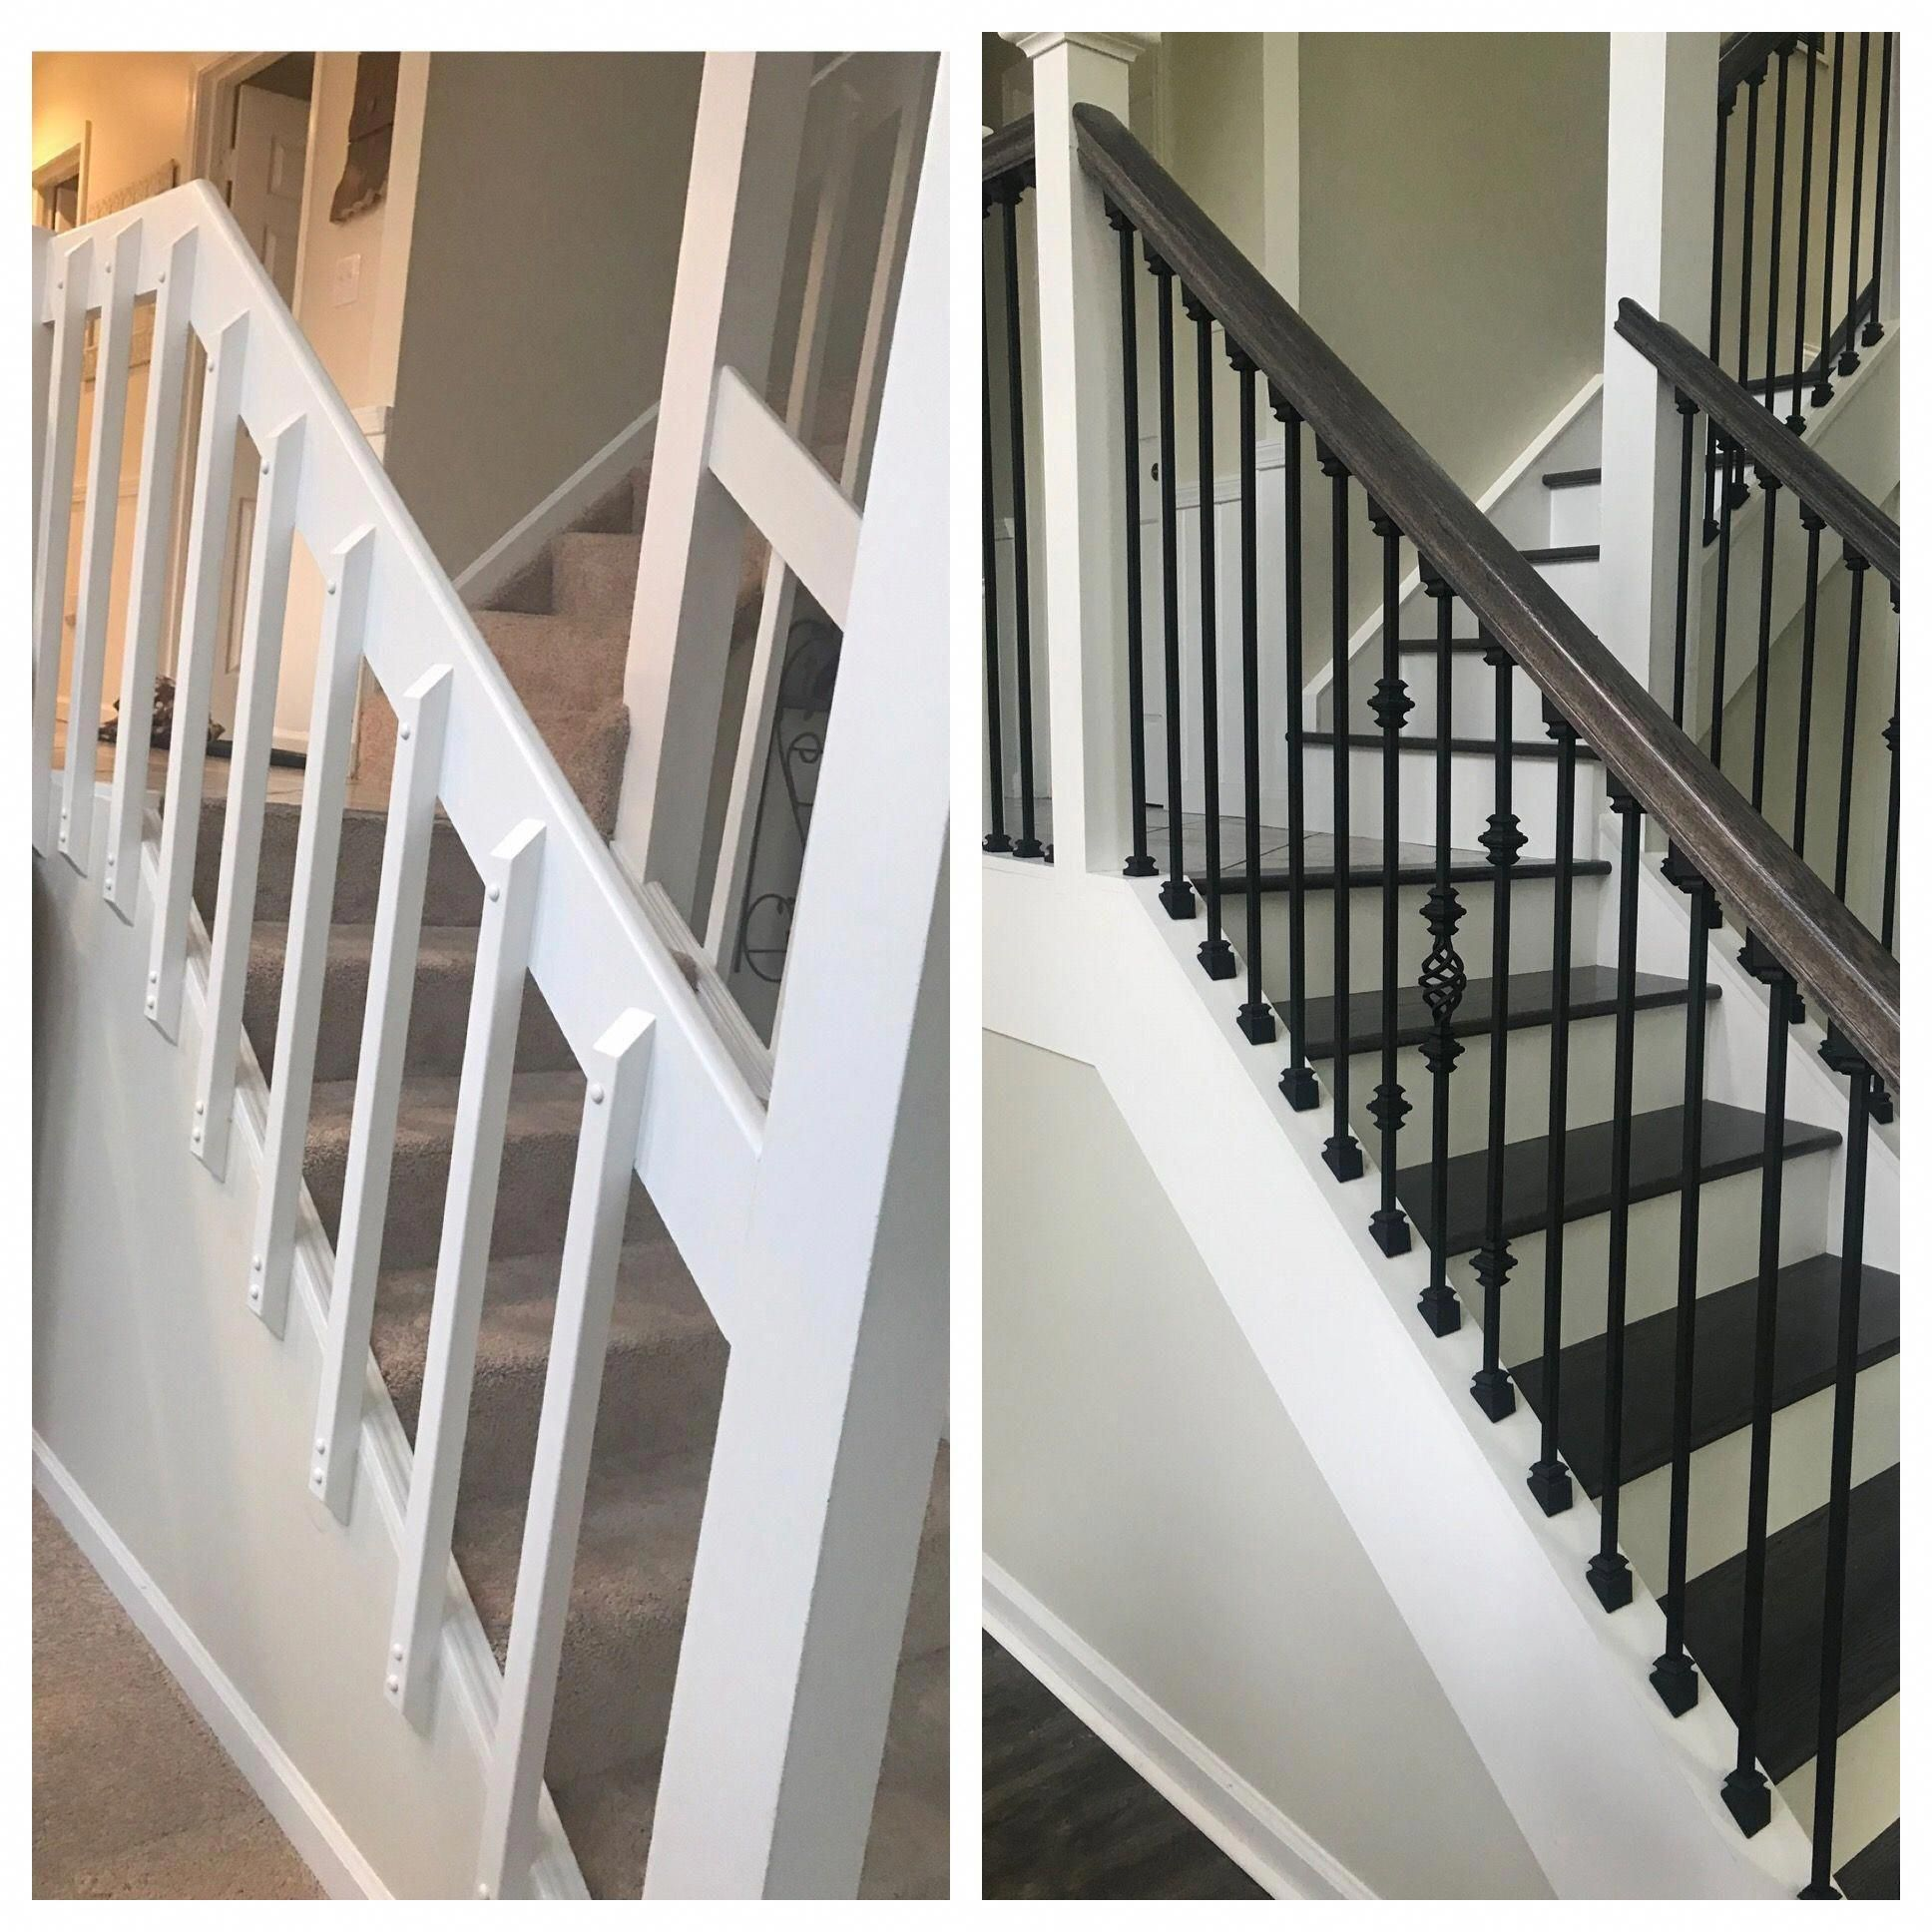 How To Clean Leather In 2020 Stair Remodel Staircase Remodel Small Bathroom Remodel Designs